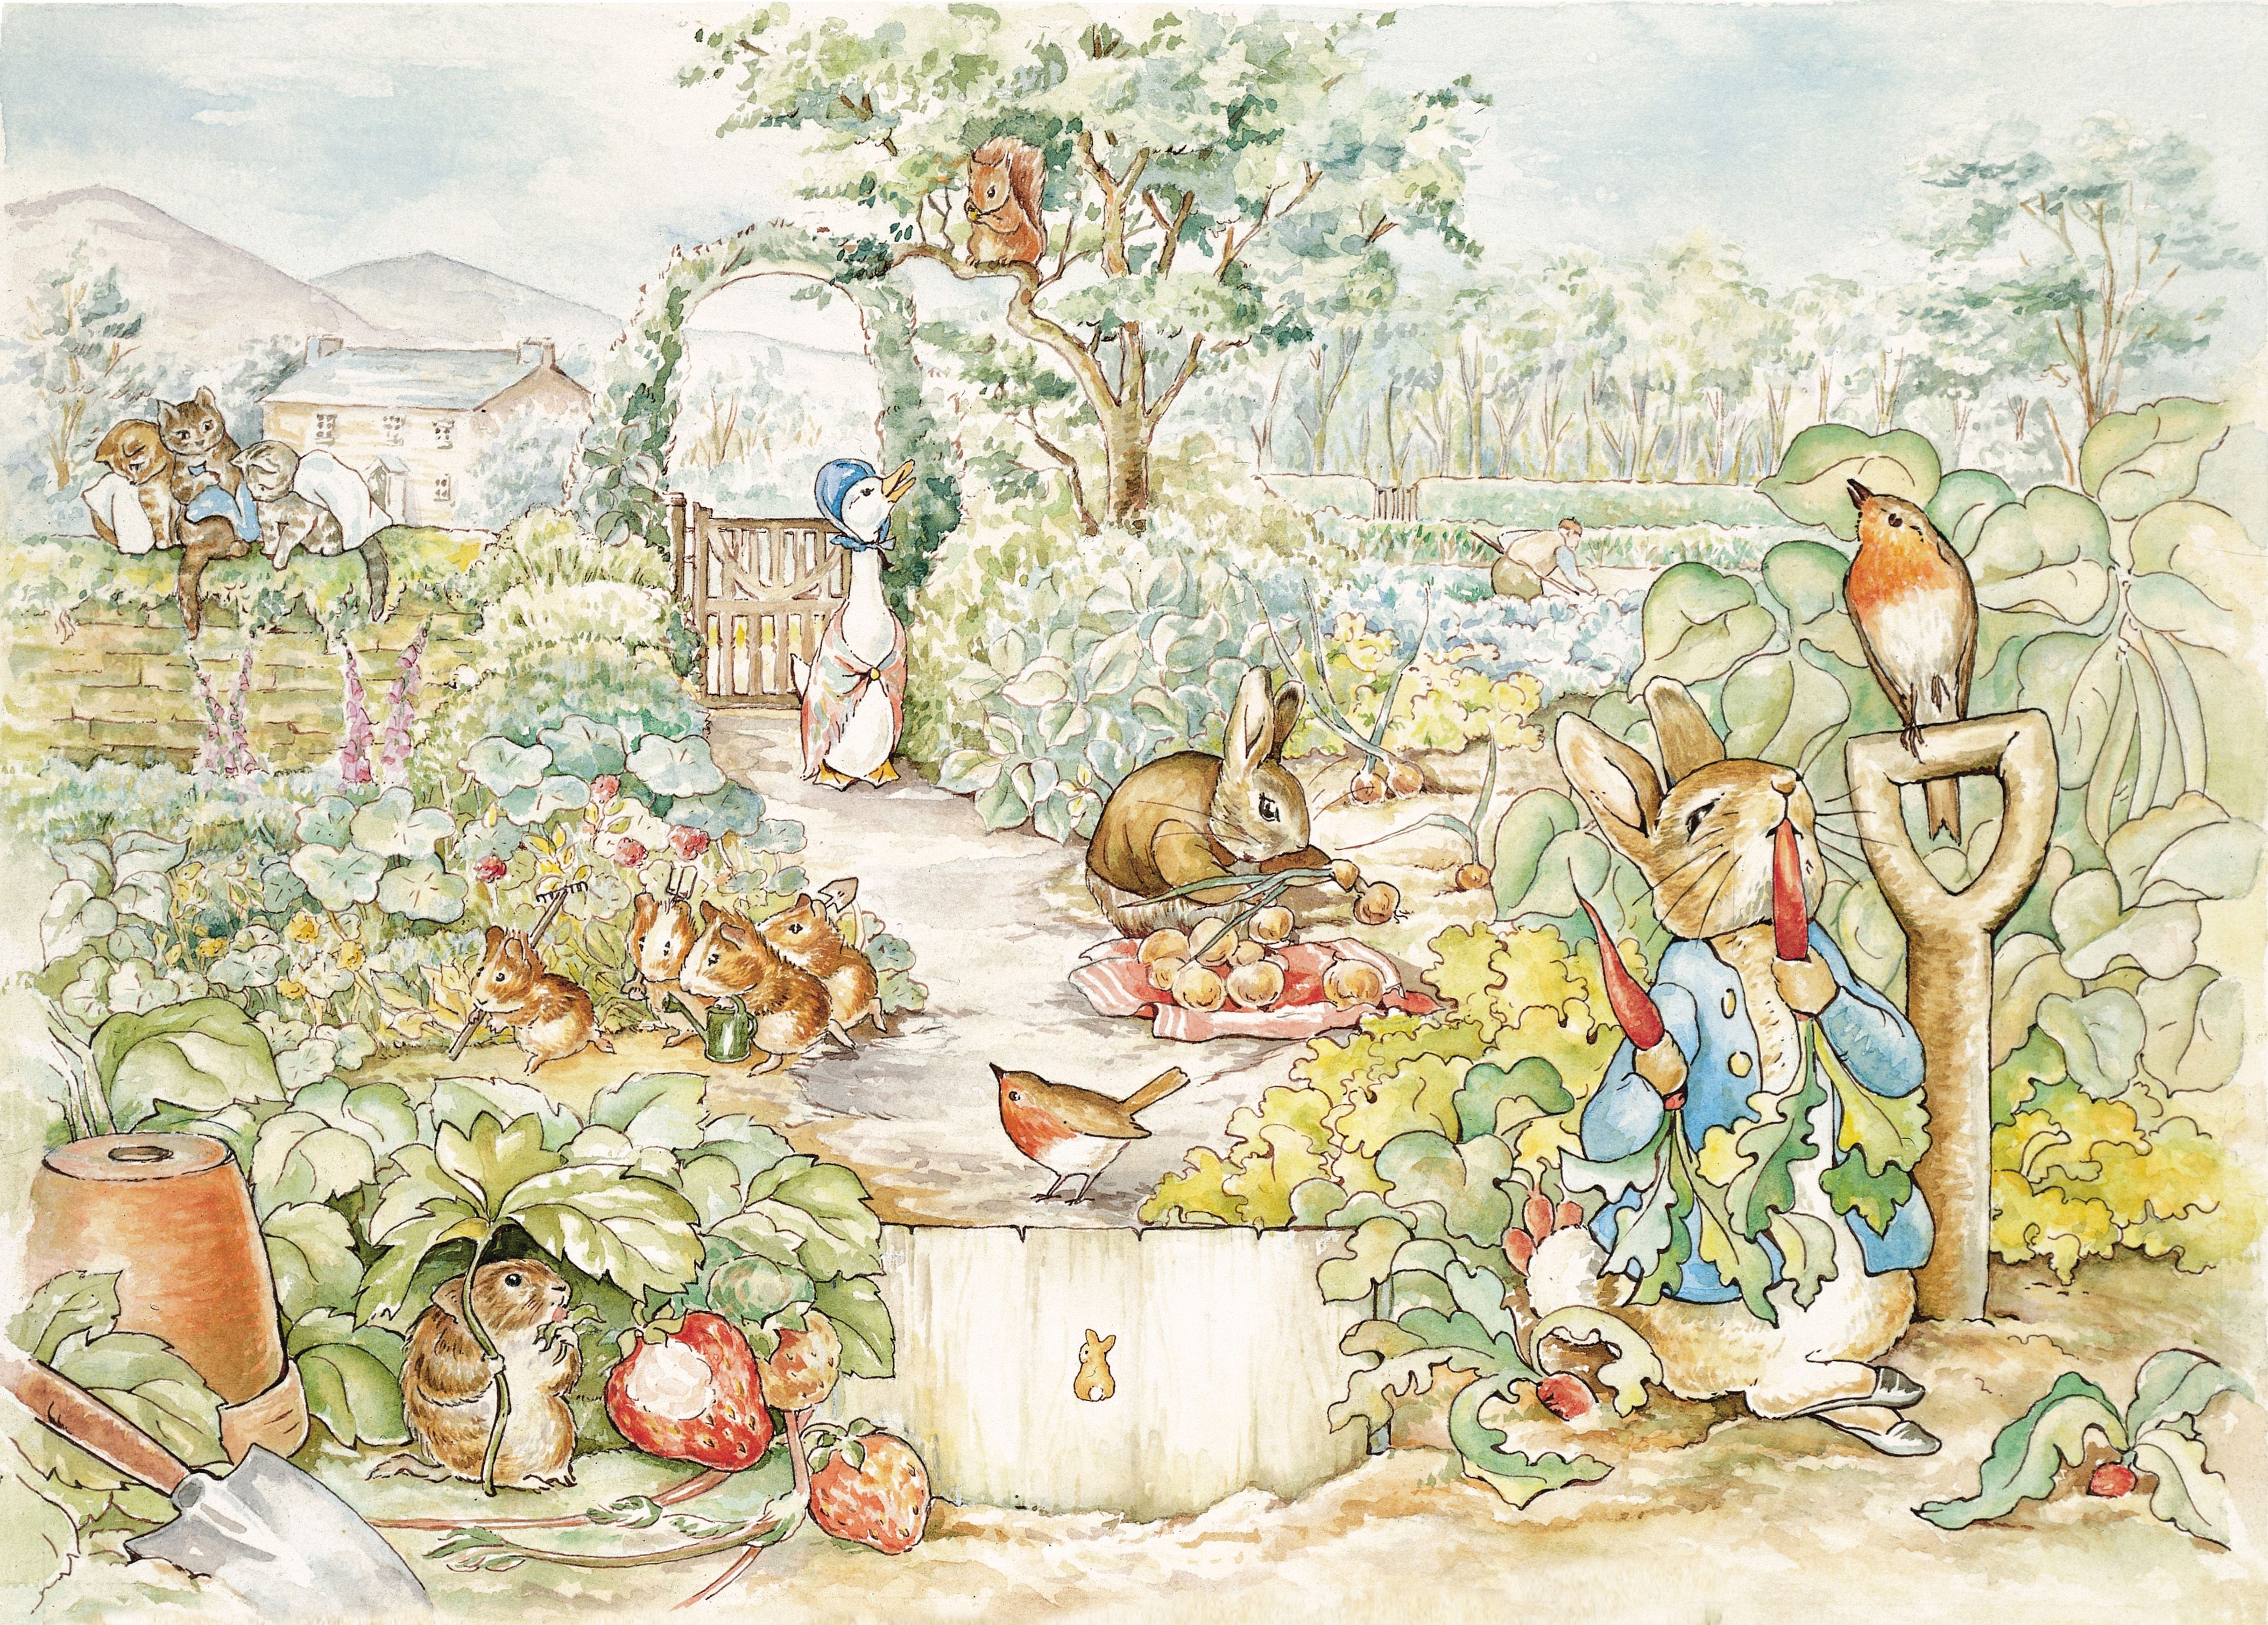 Peter Rabbit has appeared in books and on licensed product in more